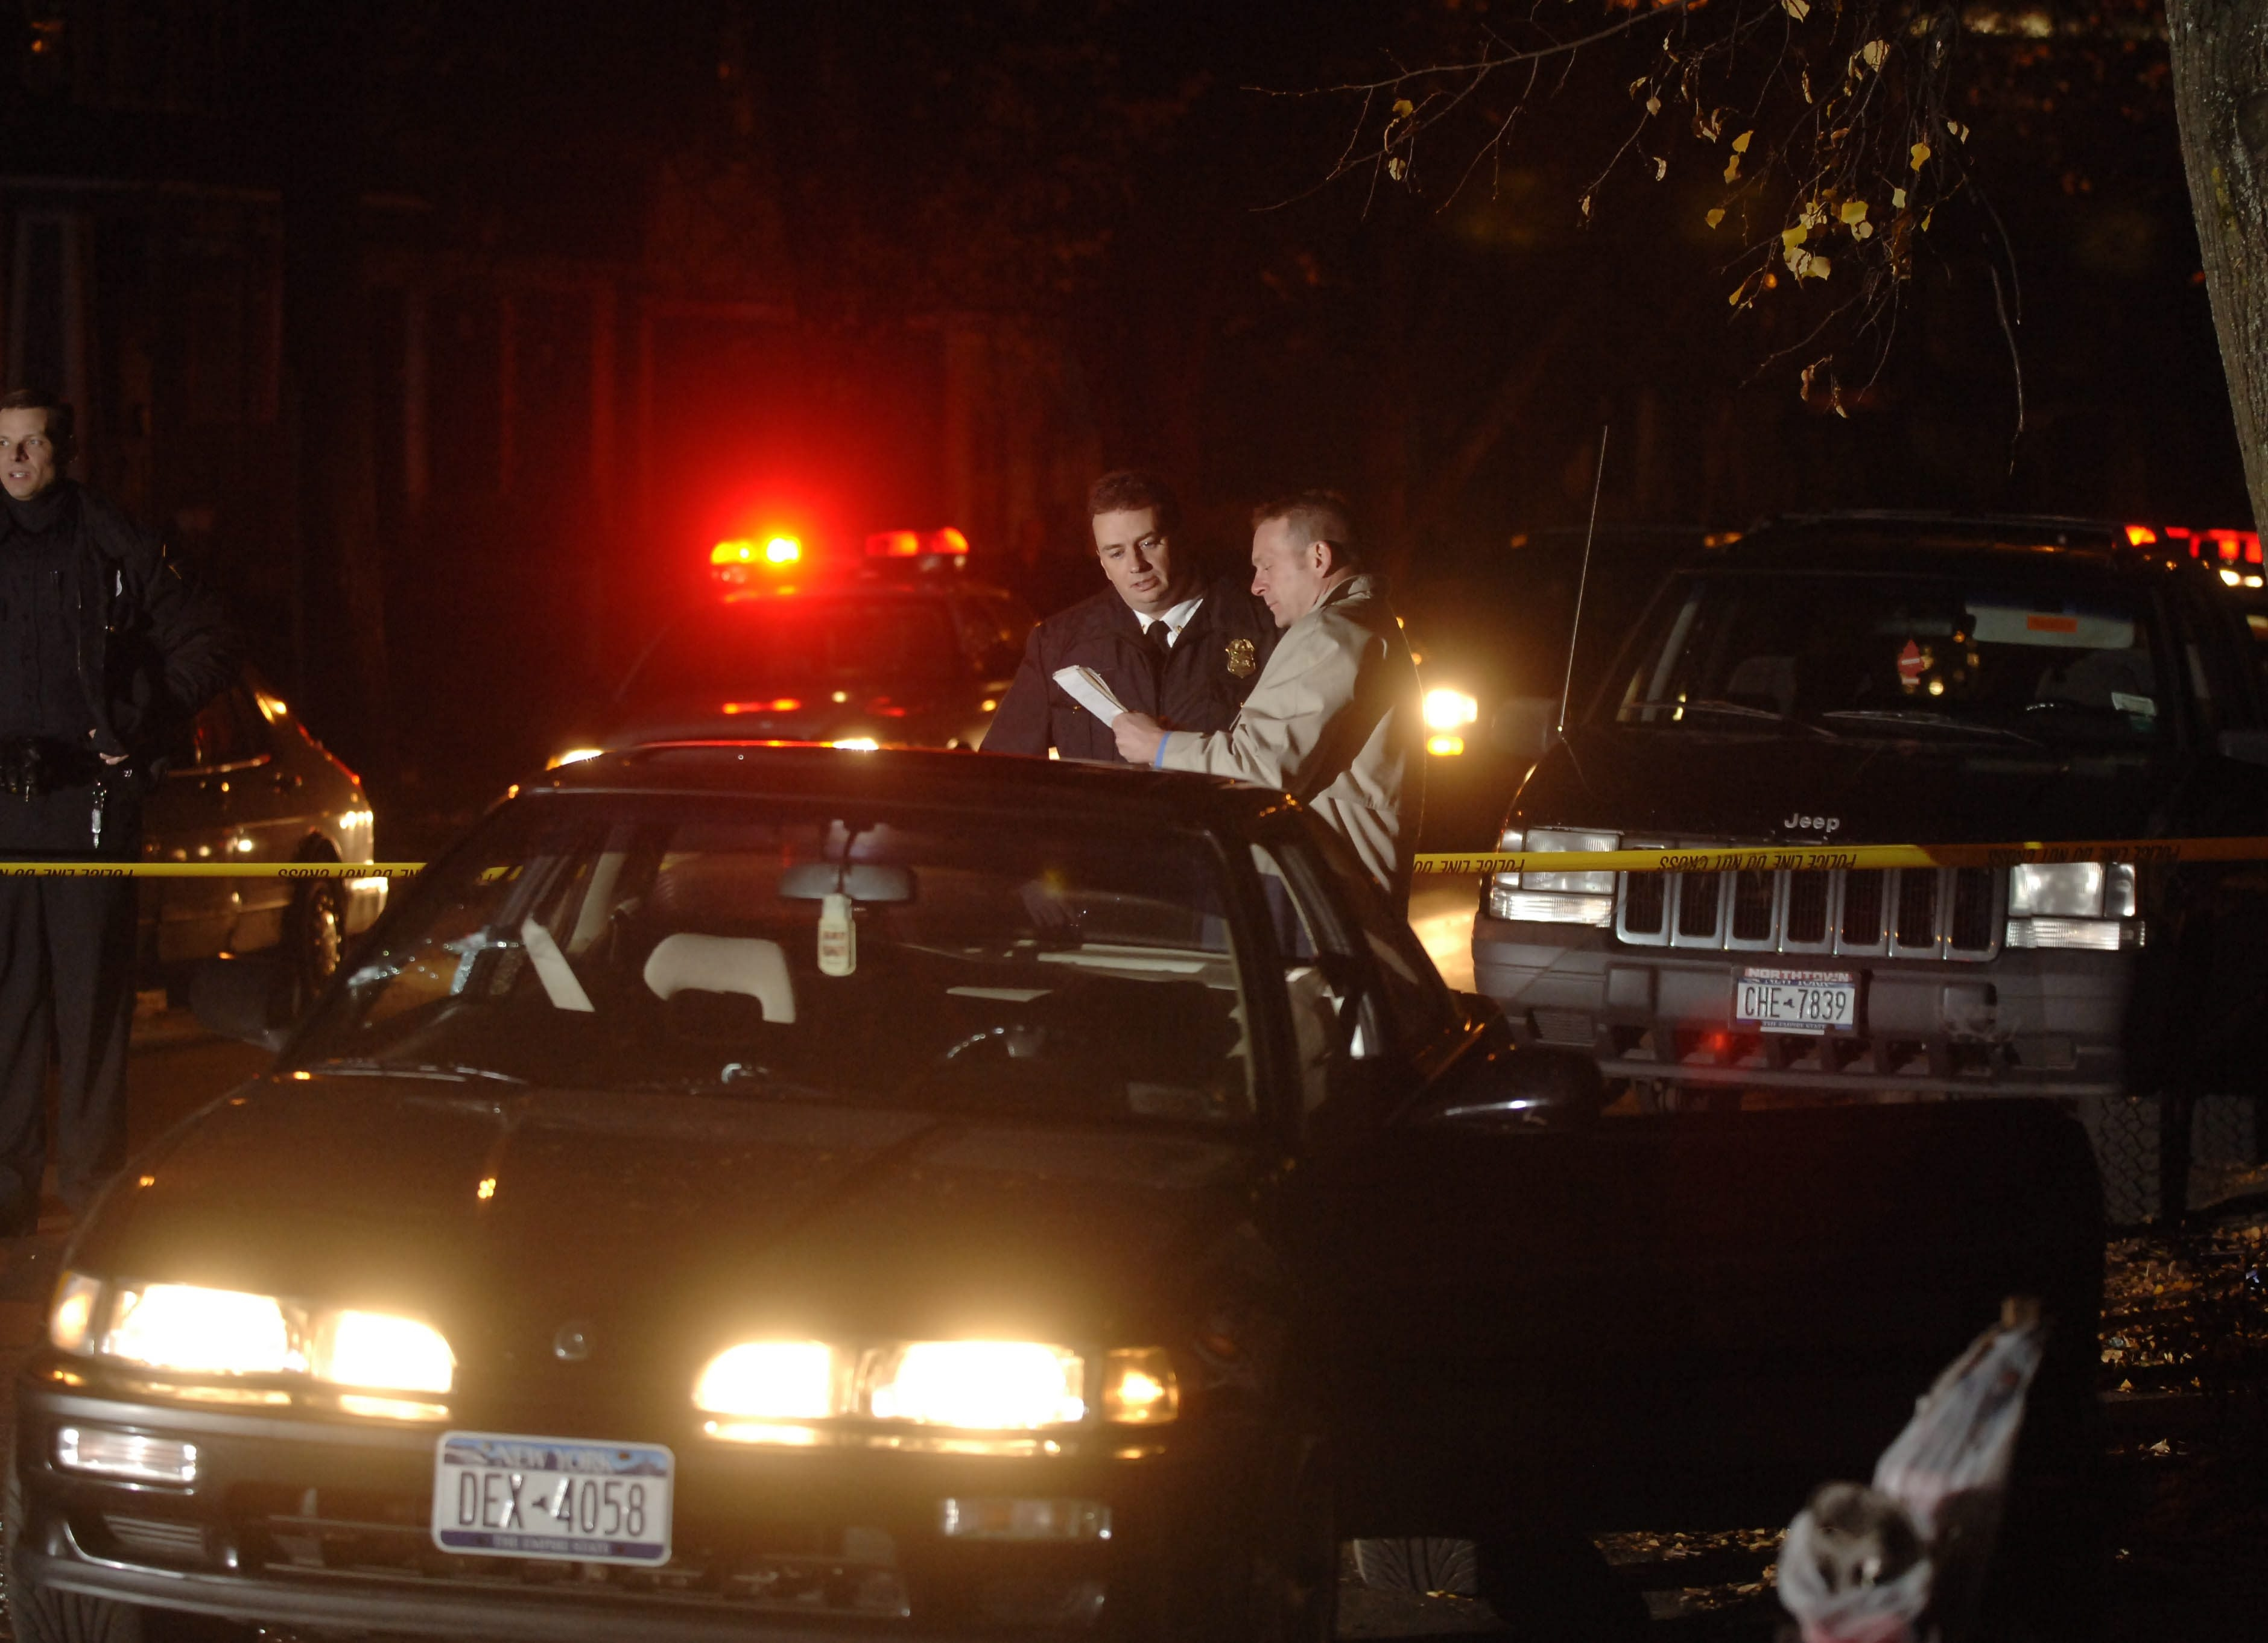 Buffalo Police investigate the scene of a drive-by shooting on Seventh Street in November 2005. For 10 years, two rival gangs battled on Buffalo's Lower West Side.